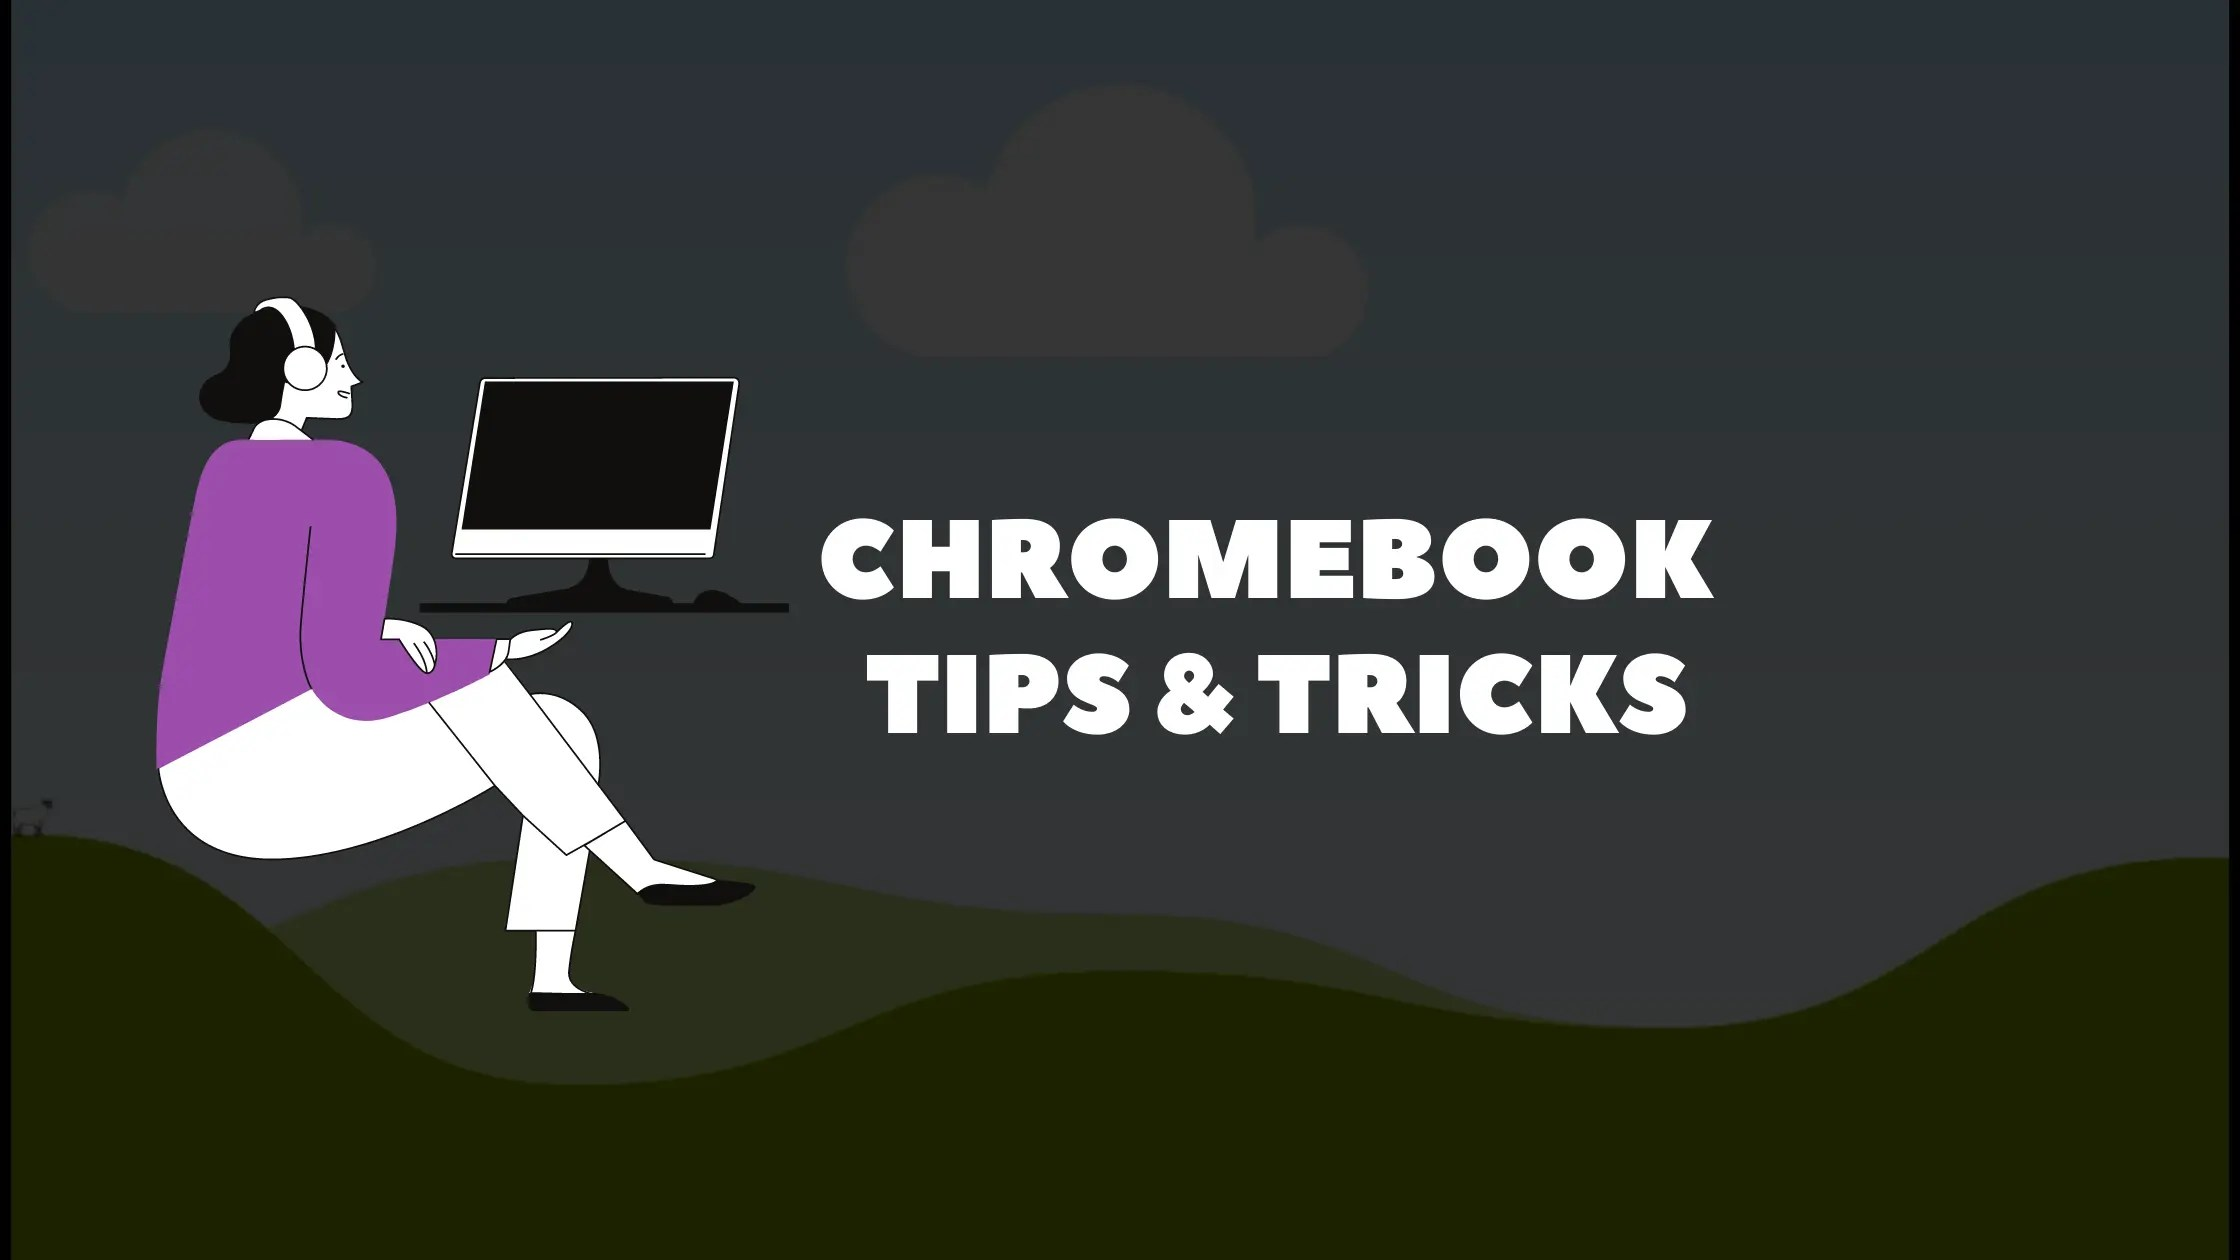 Comment on 100 Chromebook Tips by John Knowles